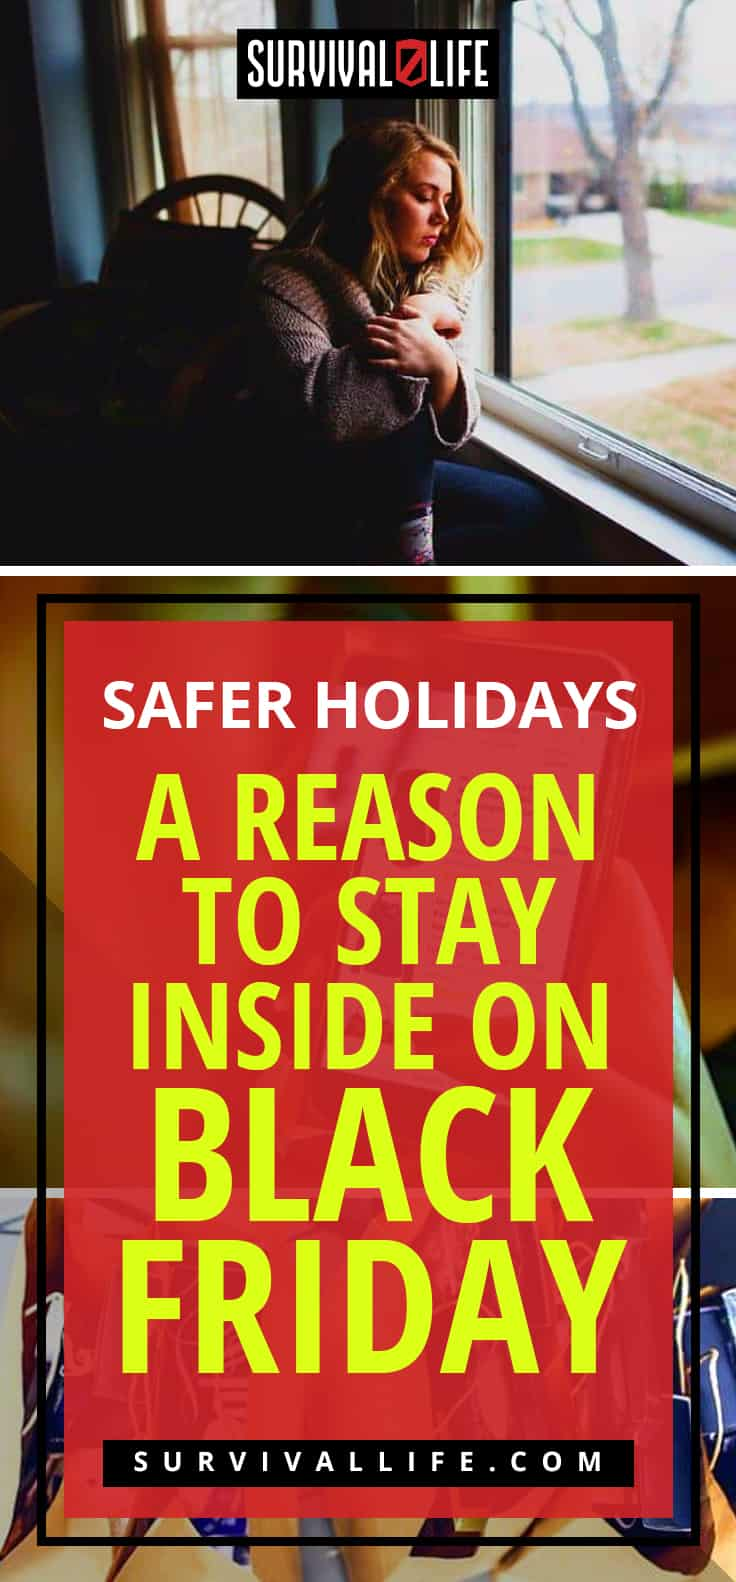 Black Friday | Safer Holidays | A Reason To Stay Inside on Black Friday